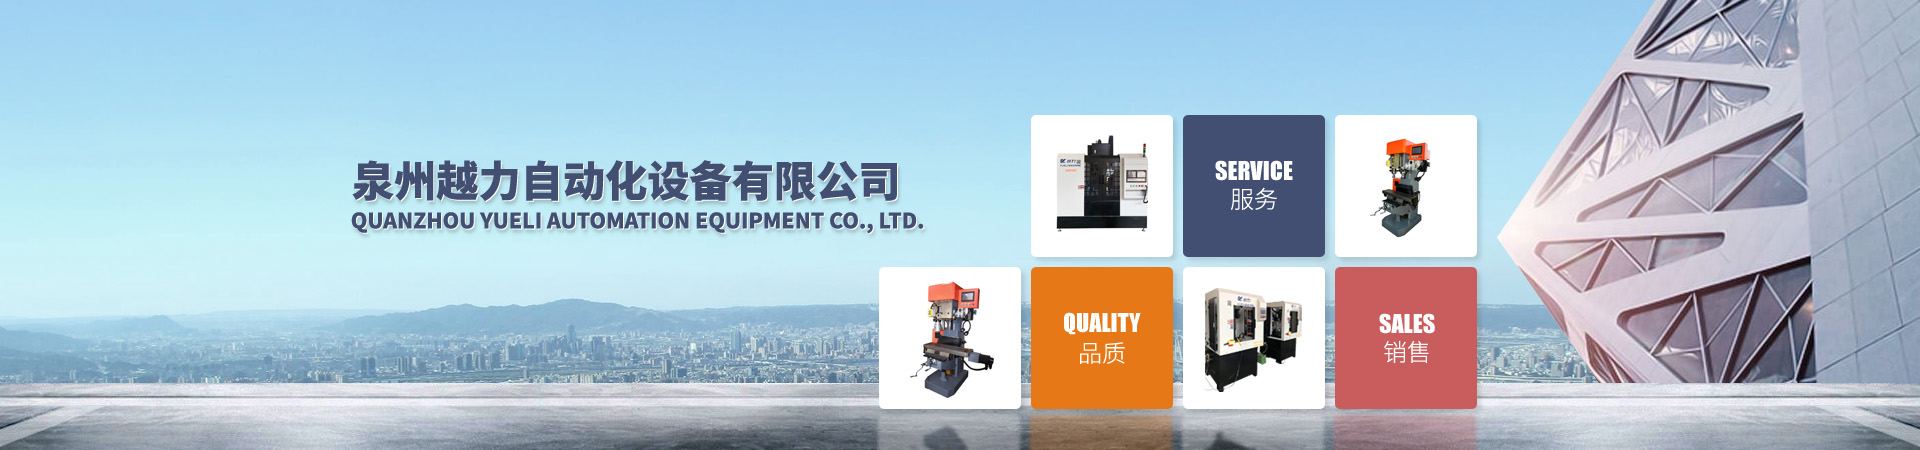 Manual Drilling Tapping Compound Machine